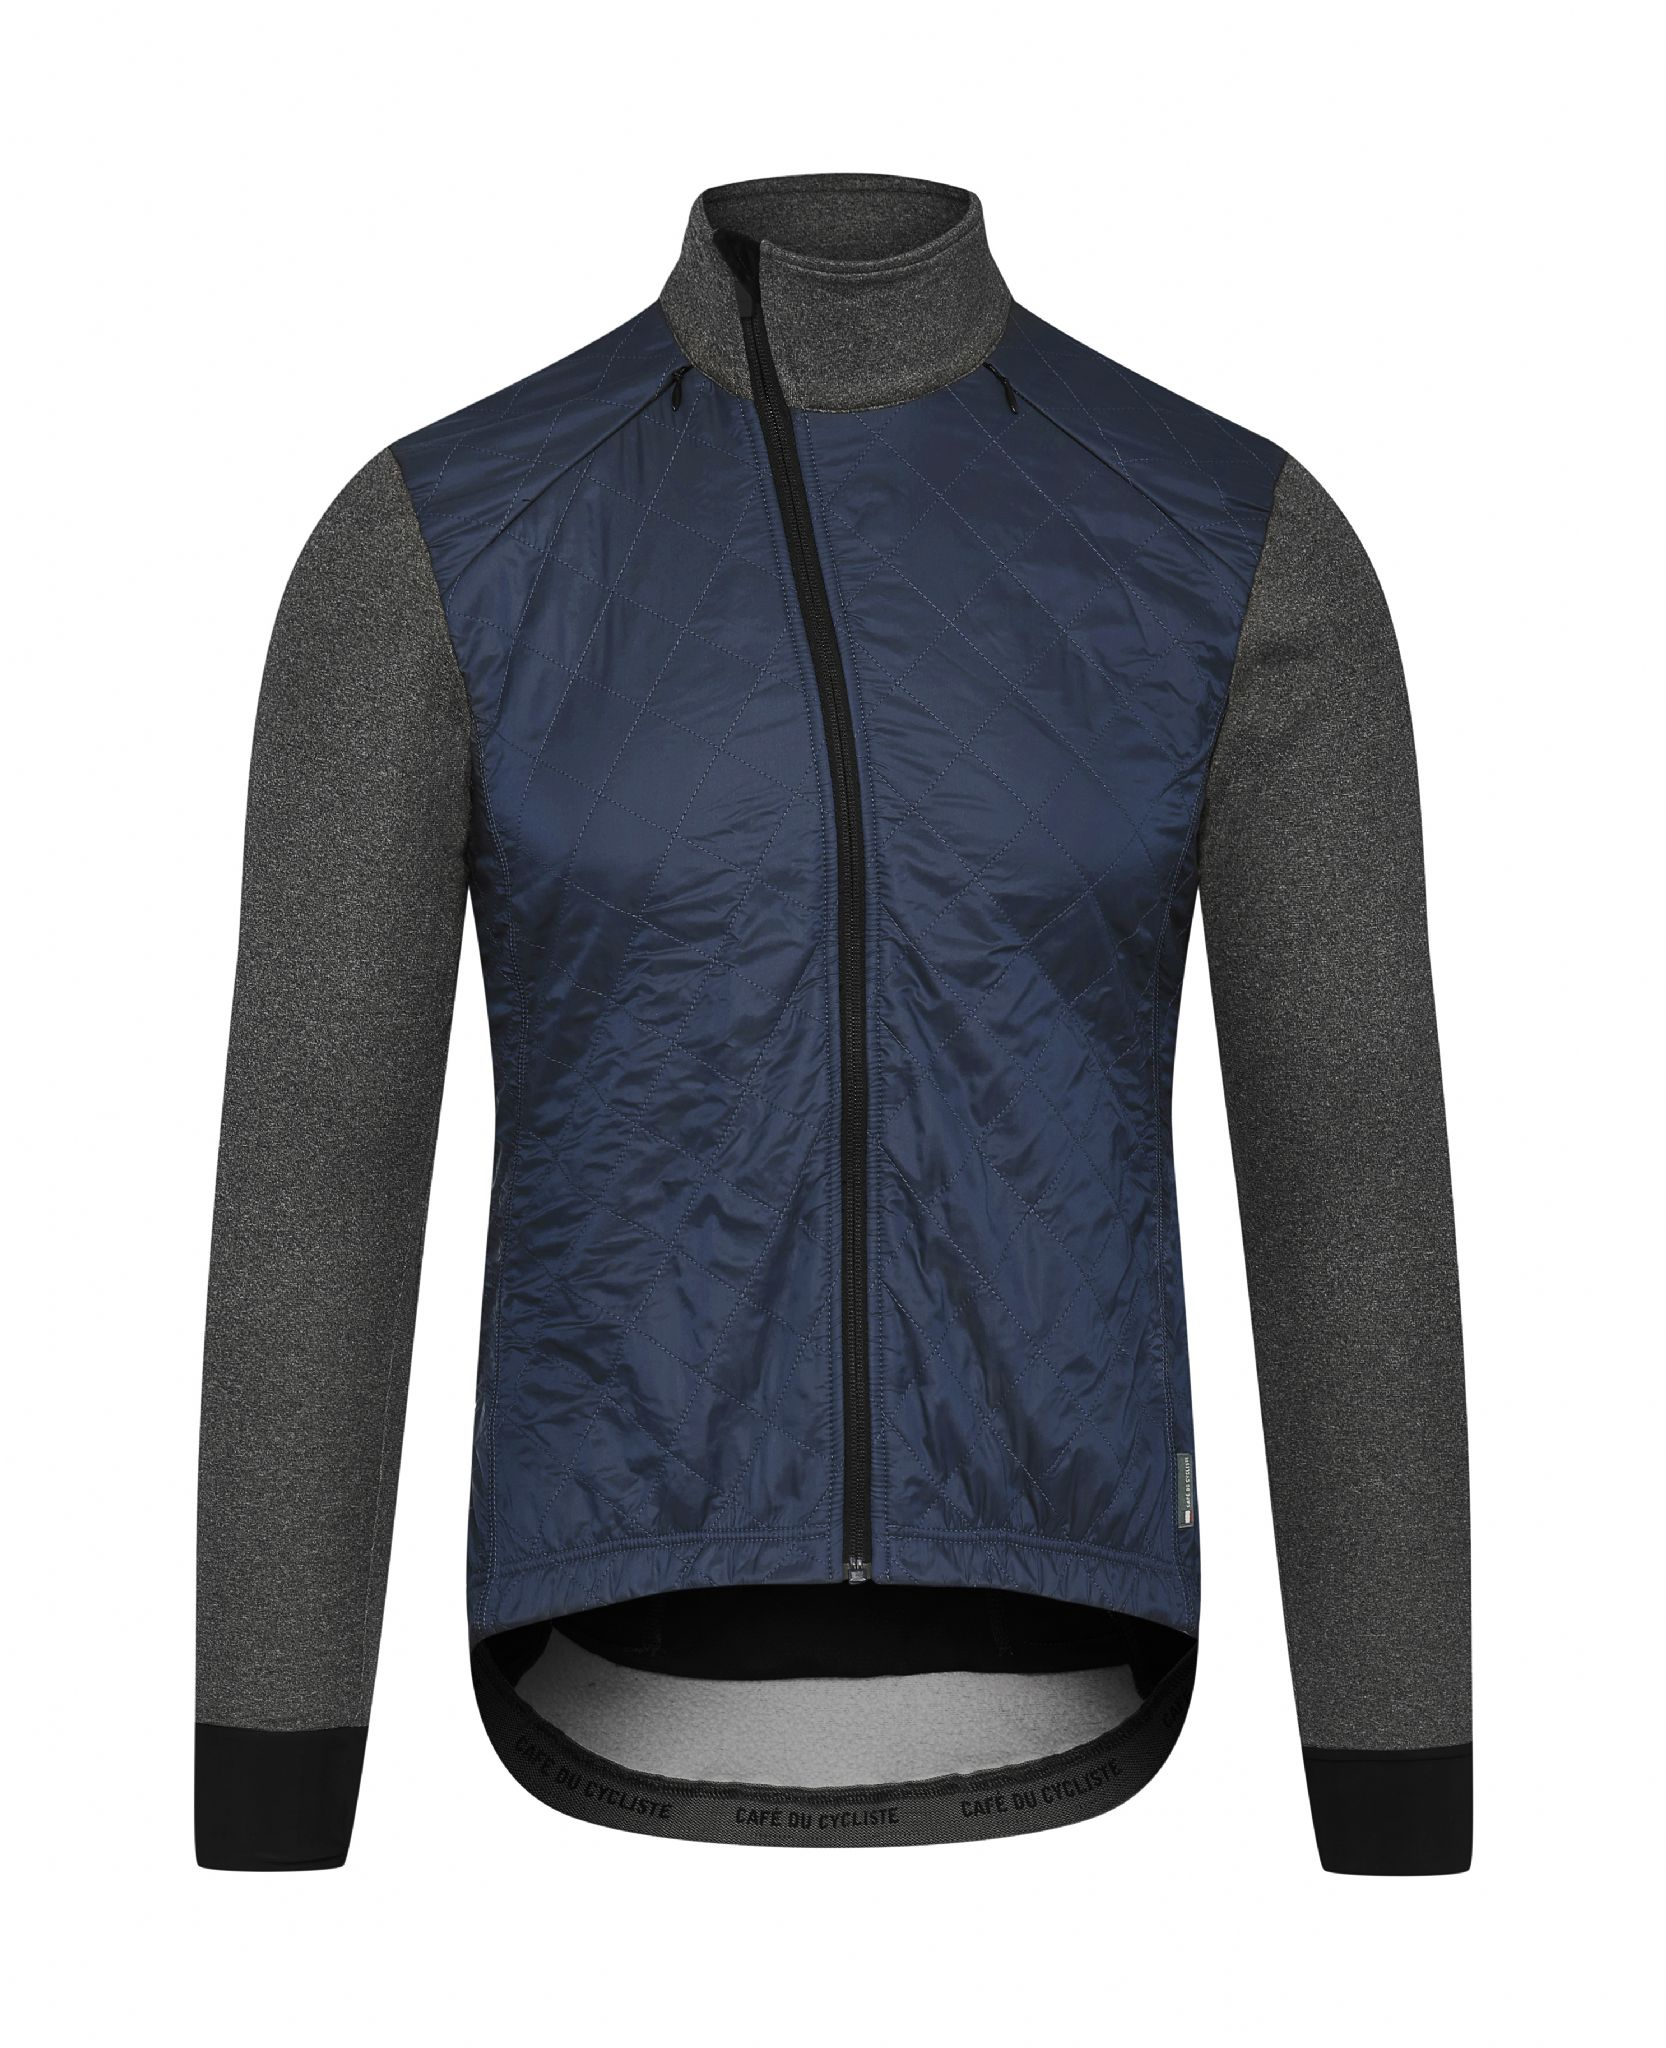 471b28fa66f Café Du Cycliste Men s Heidi Windproof Winter Jacket - Navy